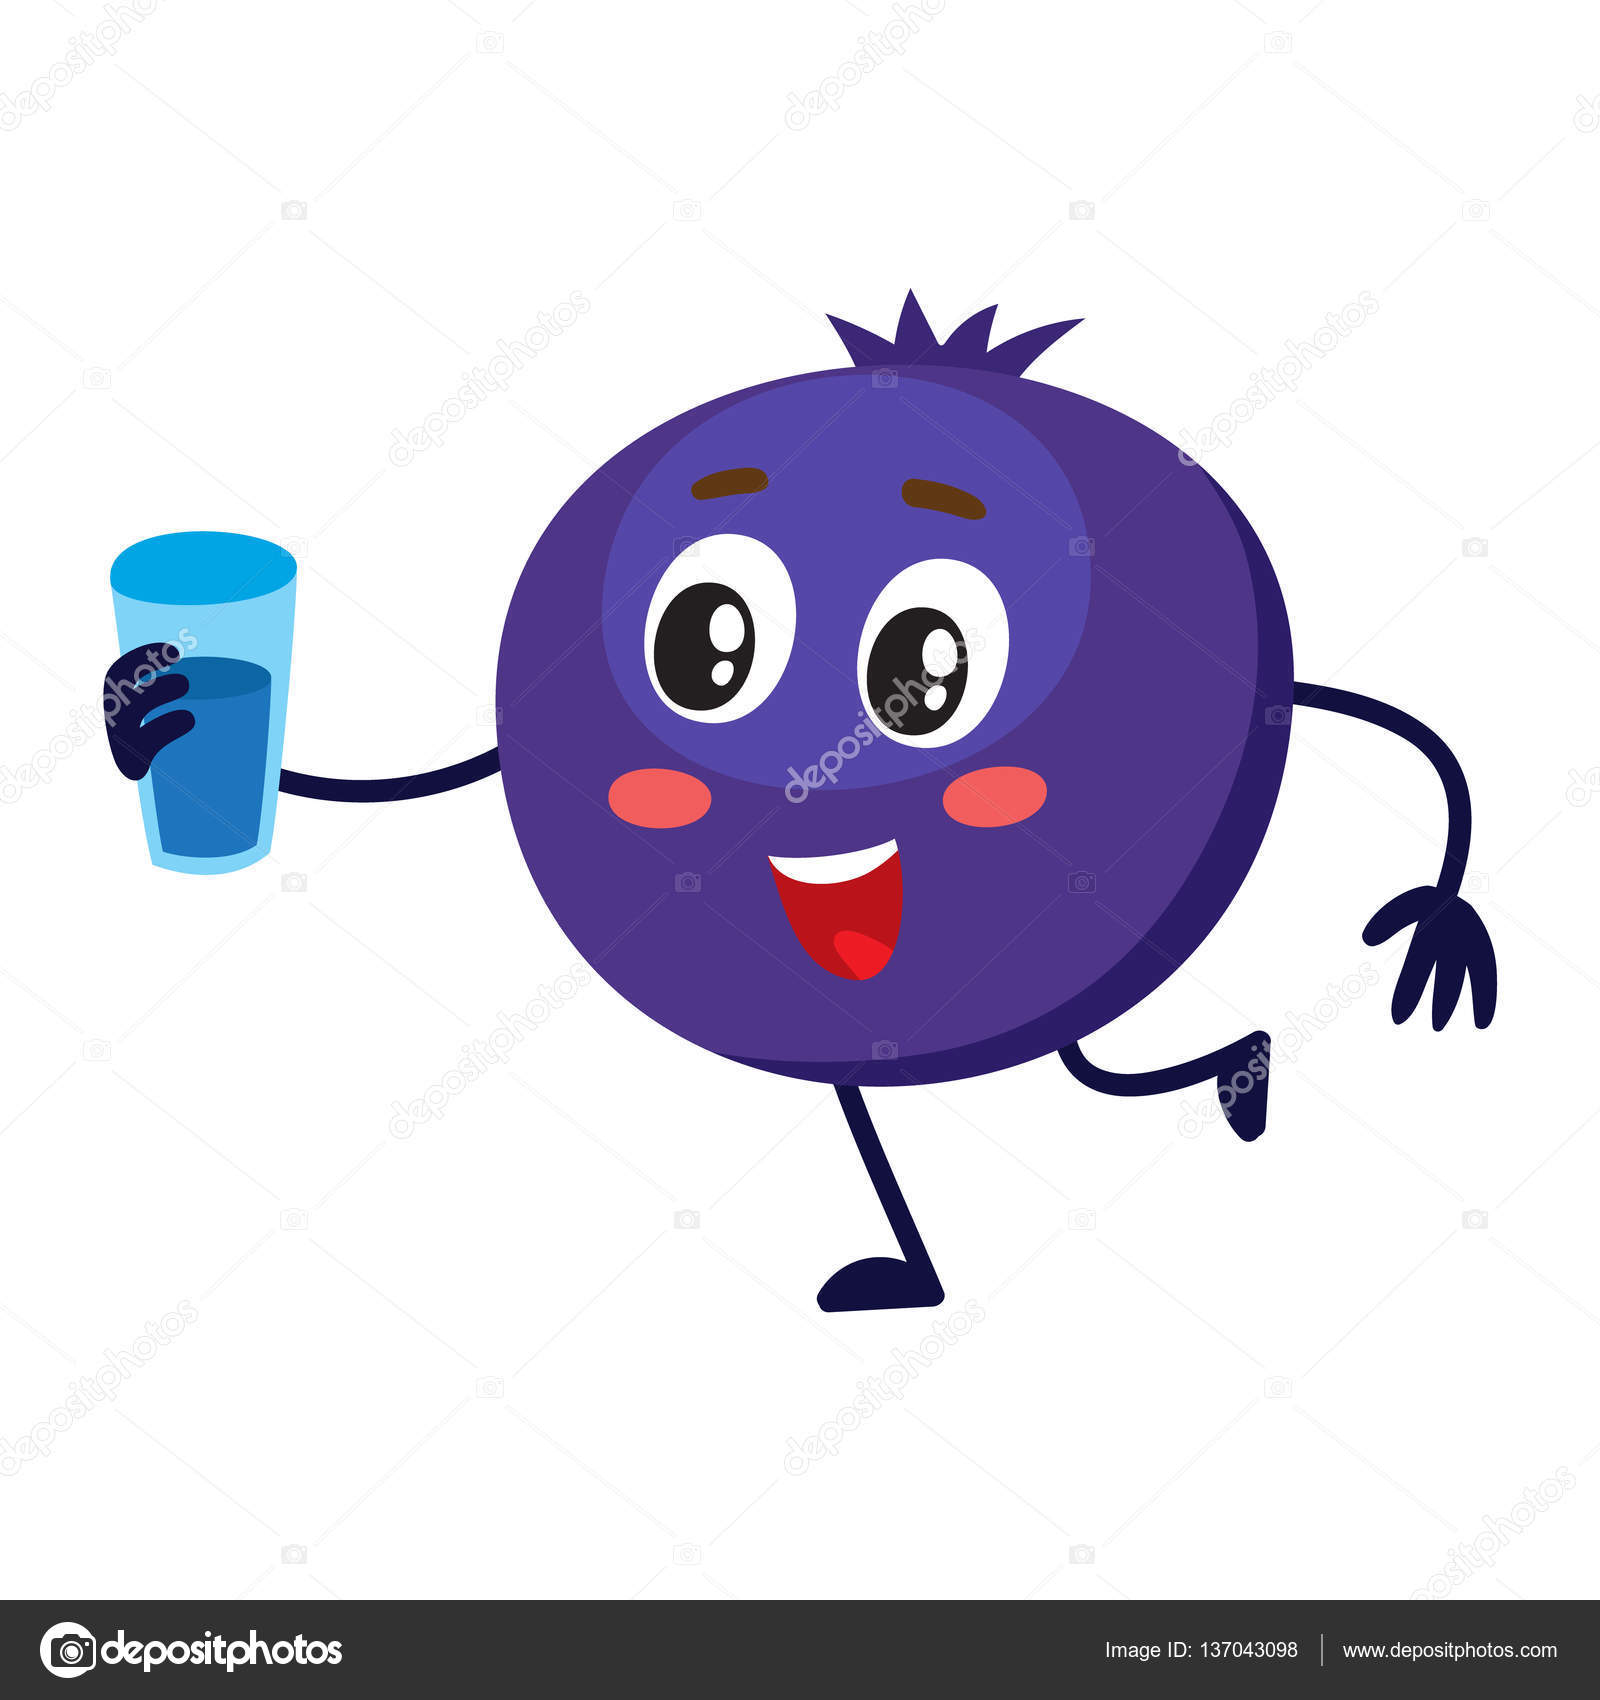 Blueberry muffin smile and. Blueberries clipart cute